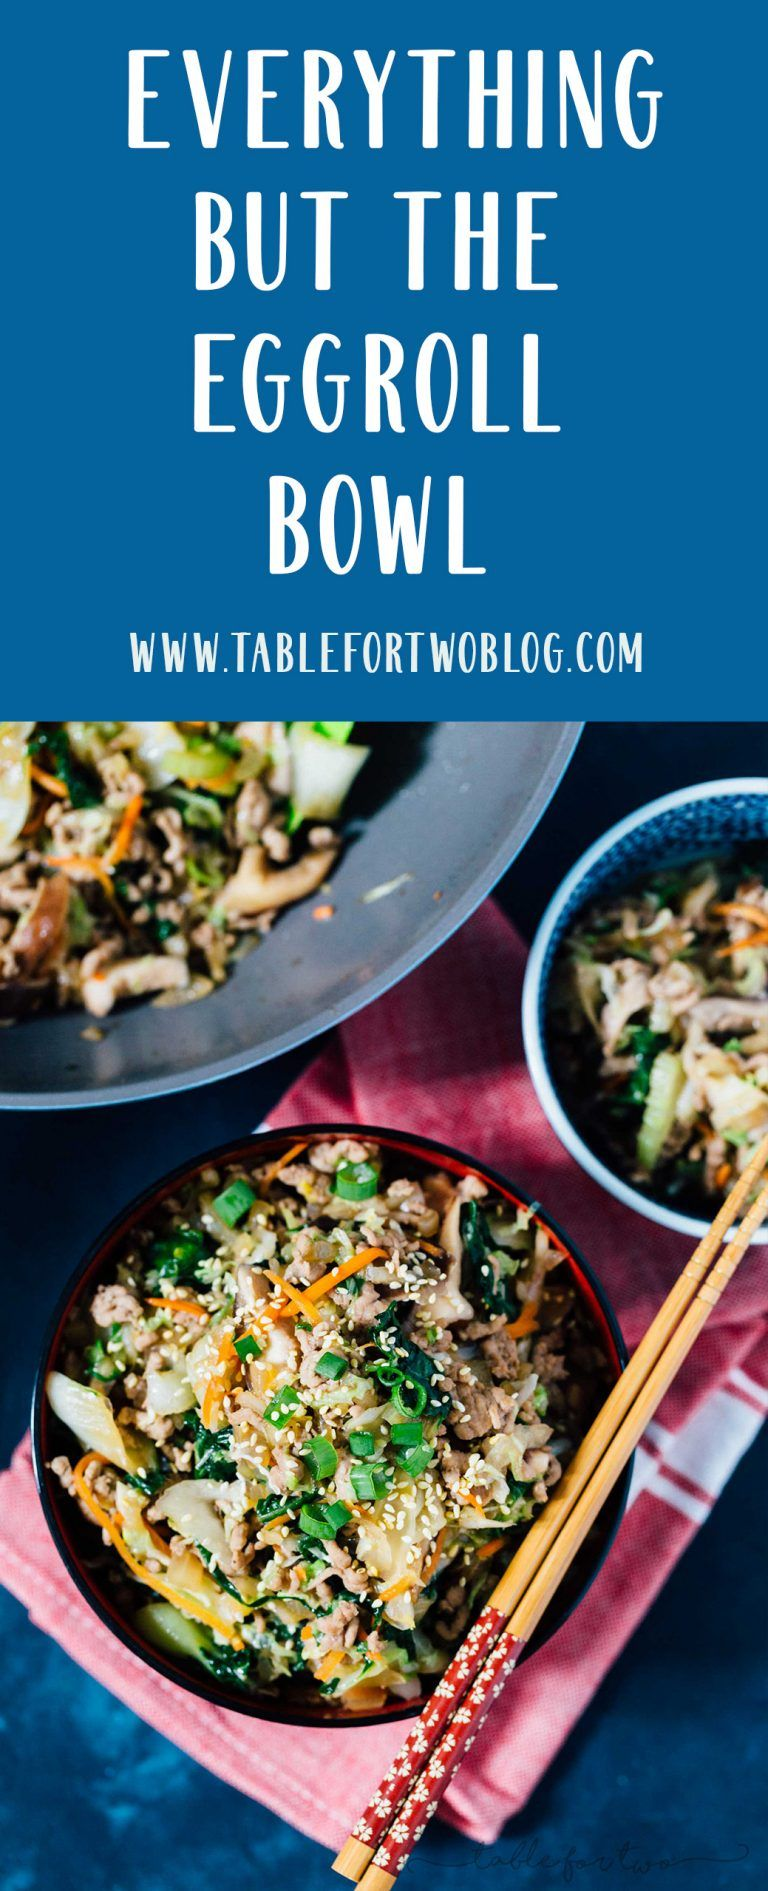 An eggroll in a bowl is your key to have all the eggroll filling you want! #eggrollbowl #eggroll #tablefortwoblog #chinesefood #asiancooking #eggrollinabowl